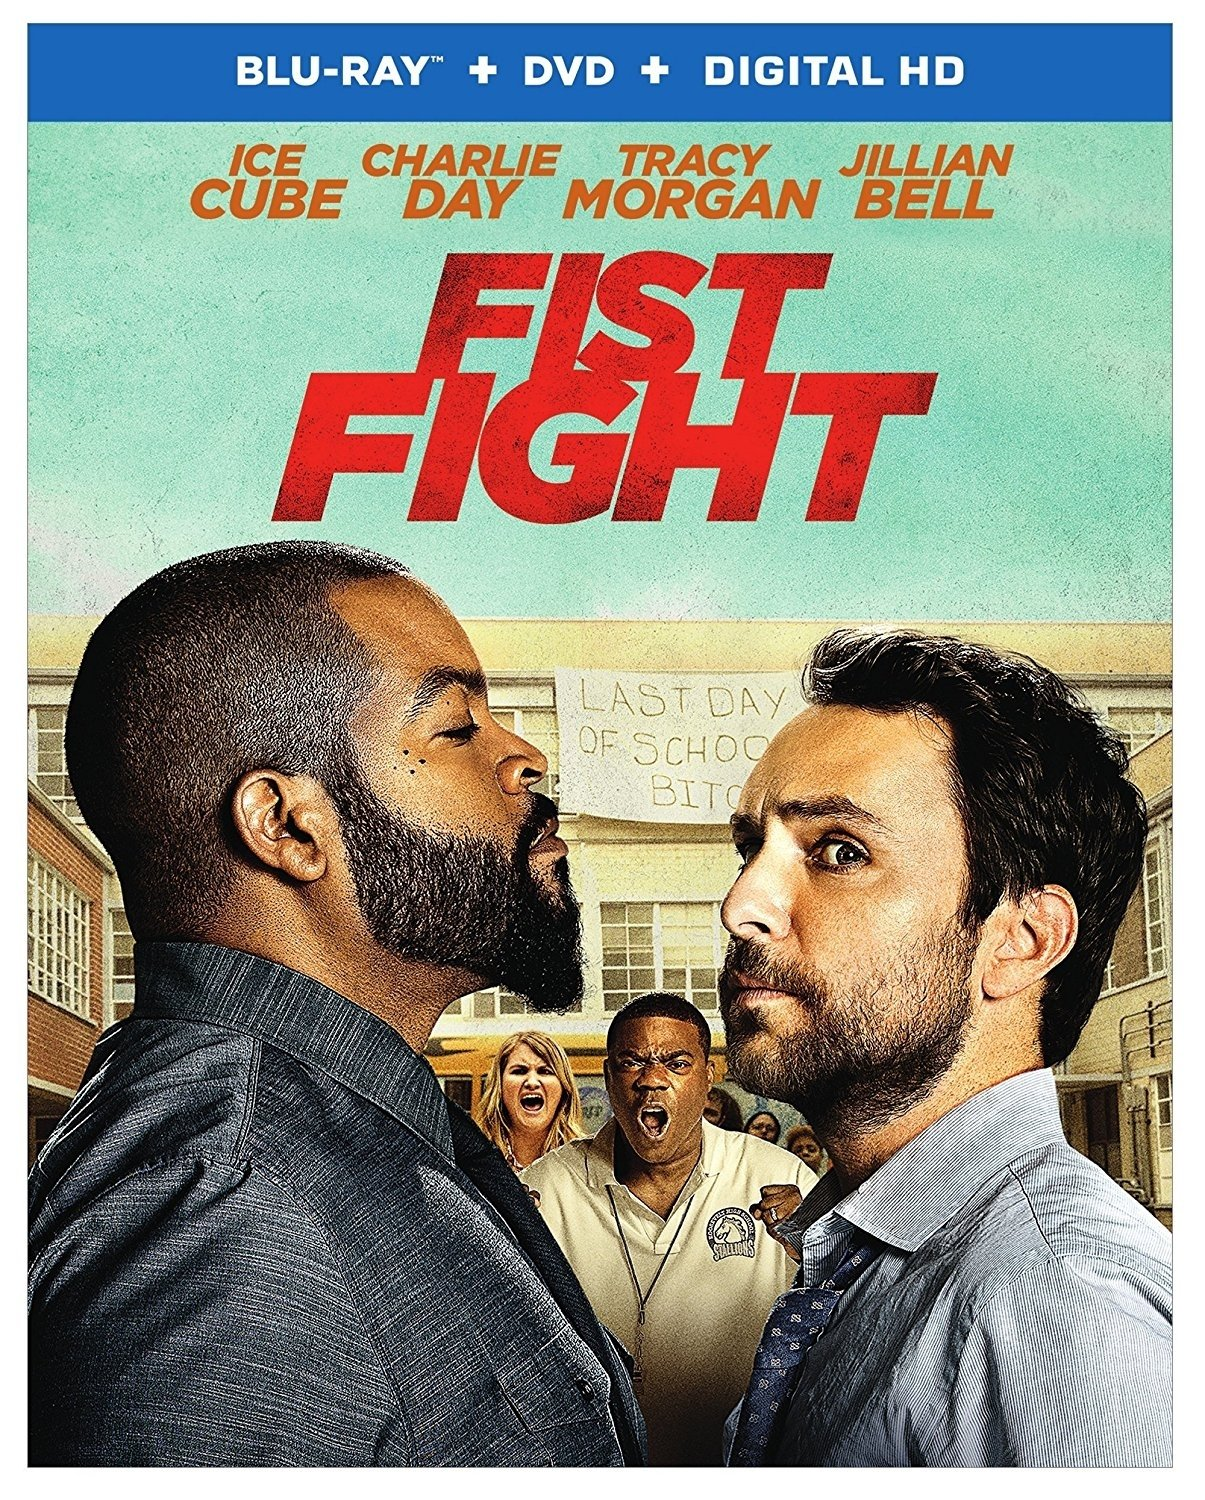 movie review-fist fight (blu ray) | wickedchannel